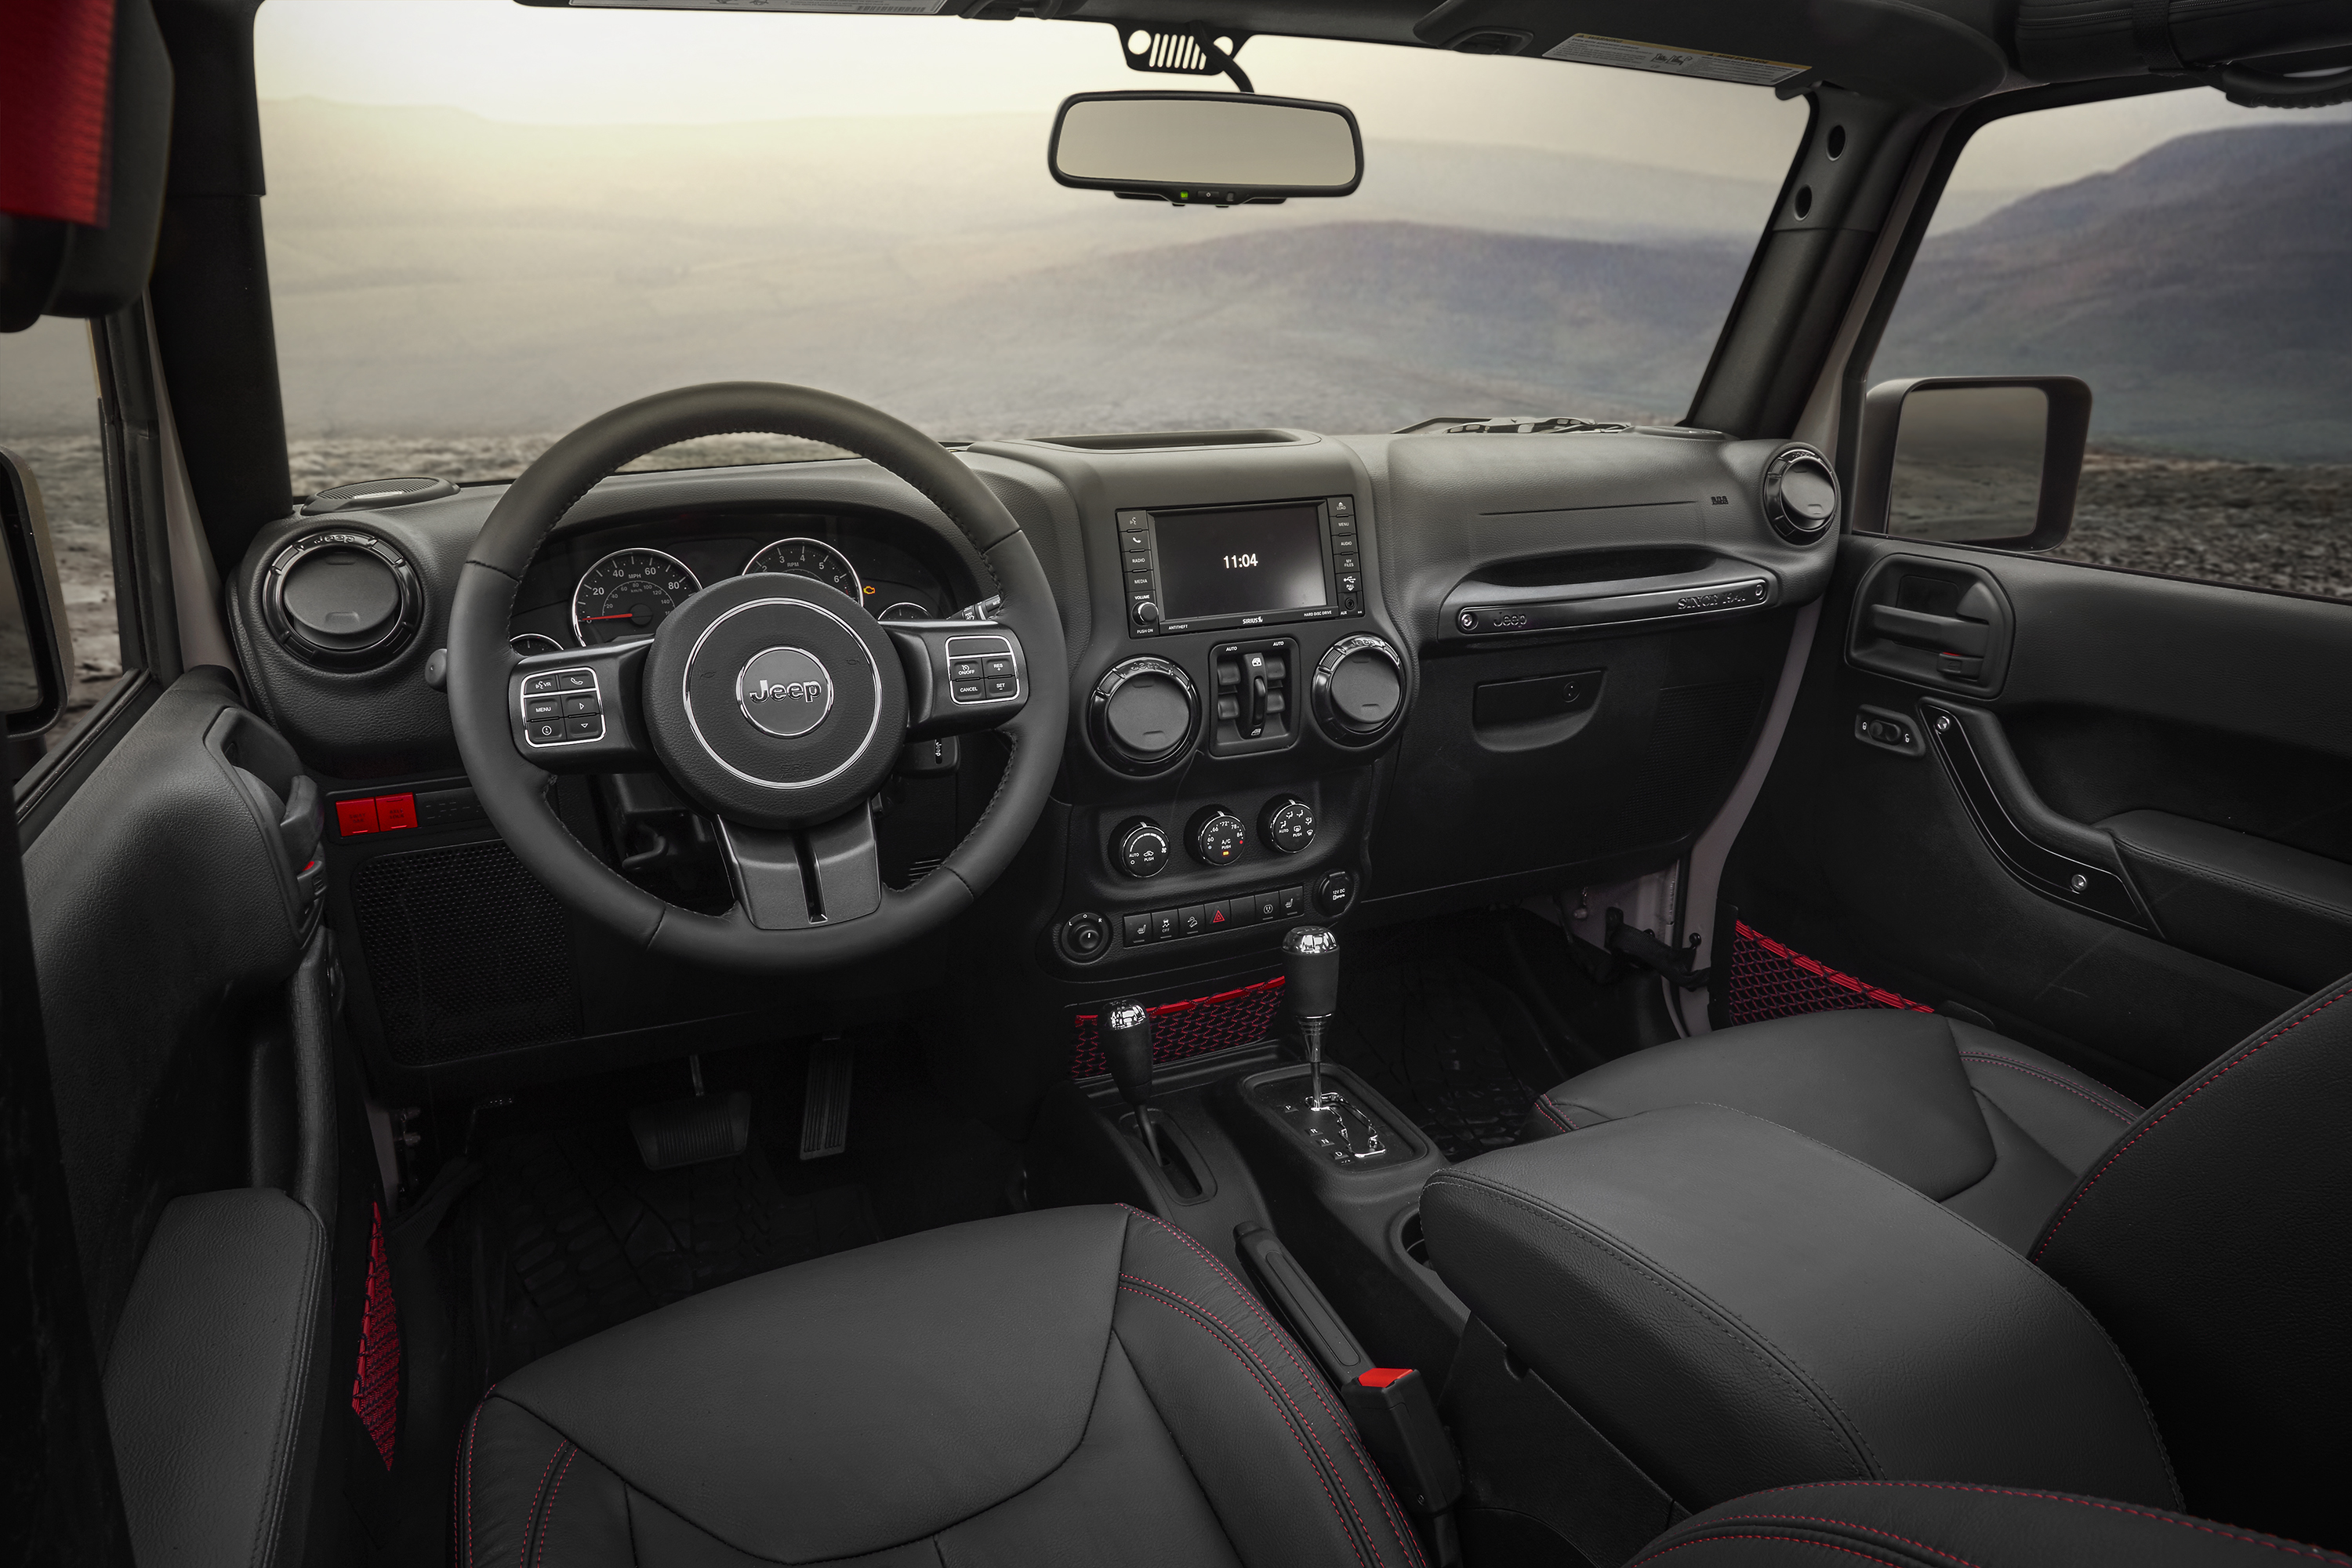 Jeep Wrangler Interior >> FCA further teases 2018 Jeep Wrangler with newly released interior shots | MLive.com